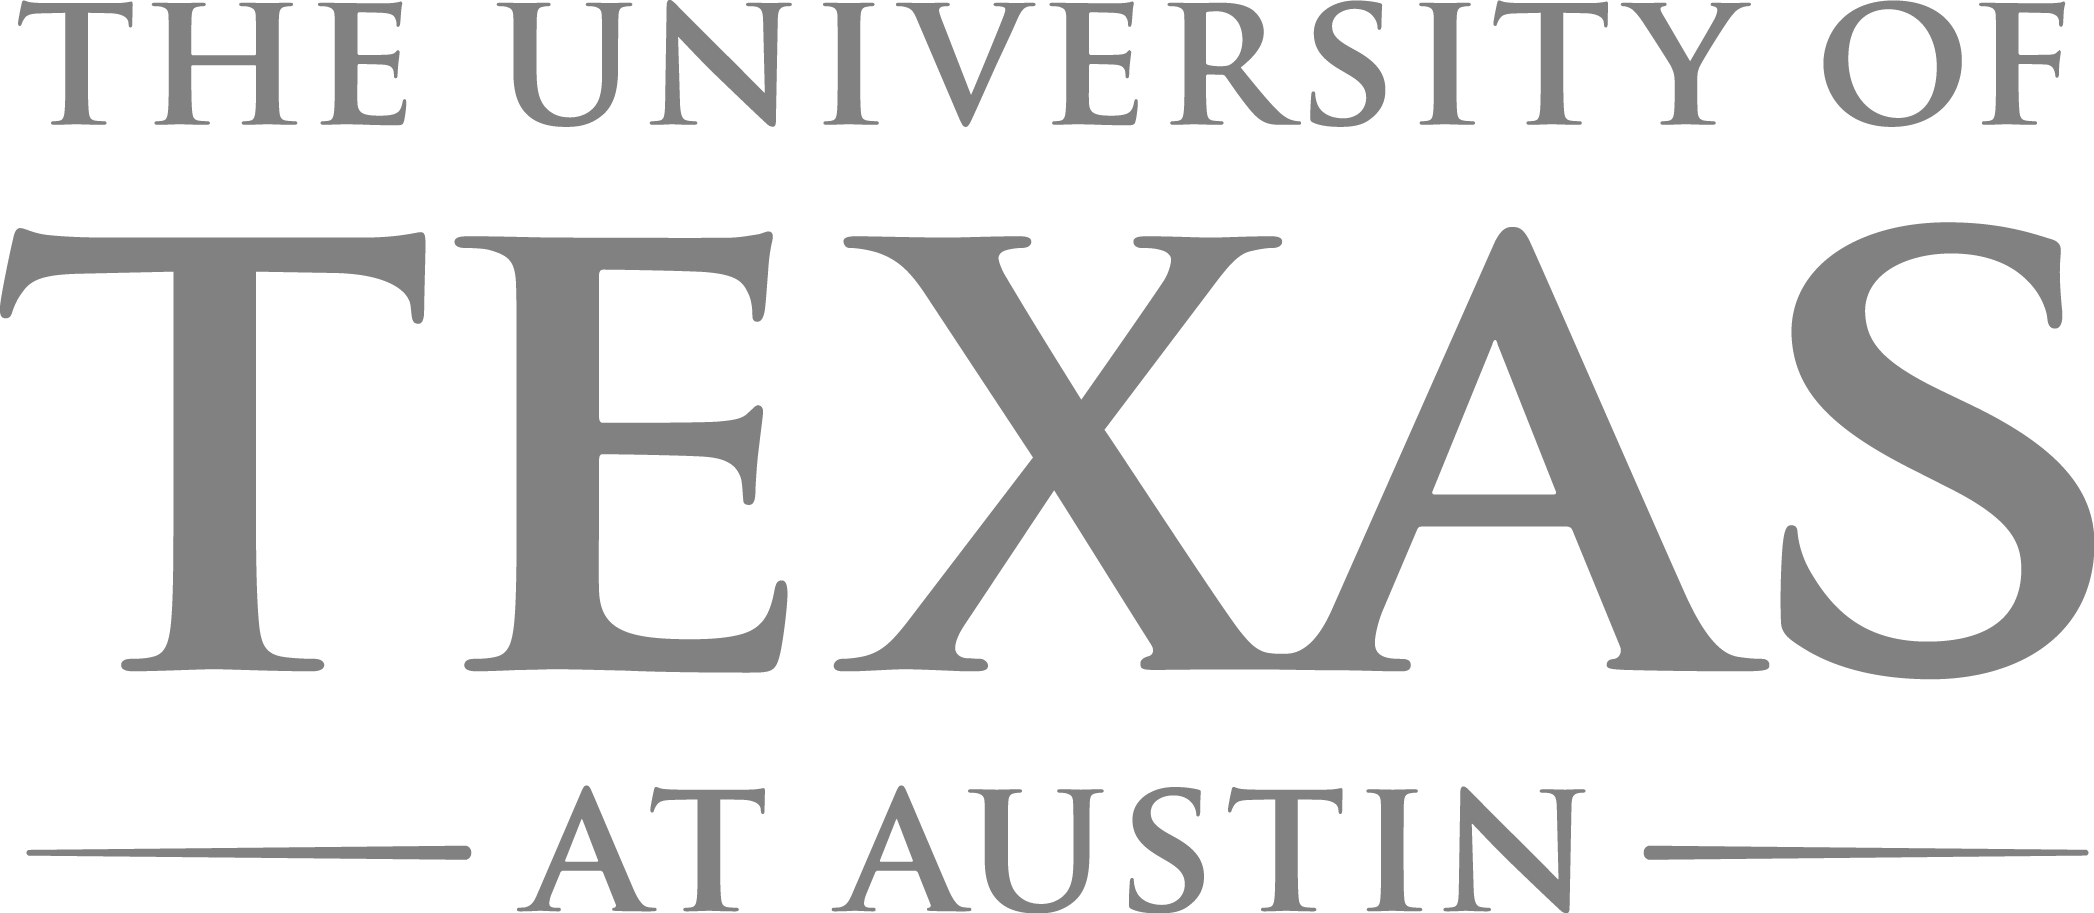 Funder: The University of Texas Austin